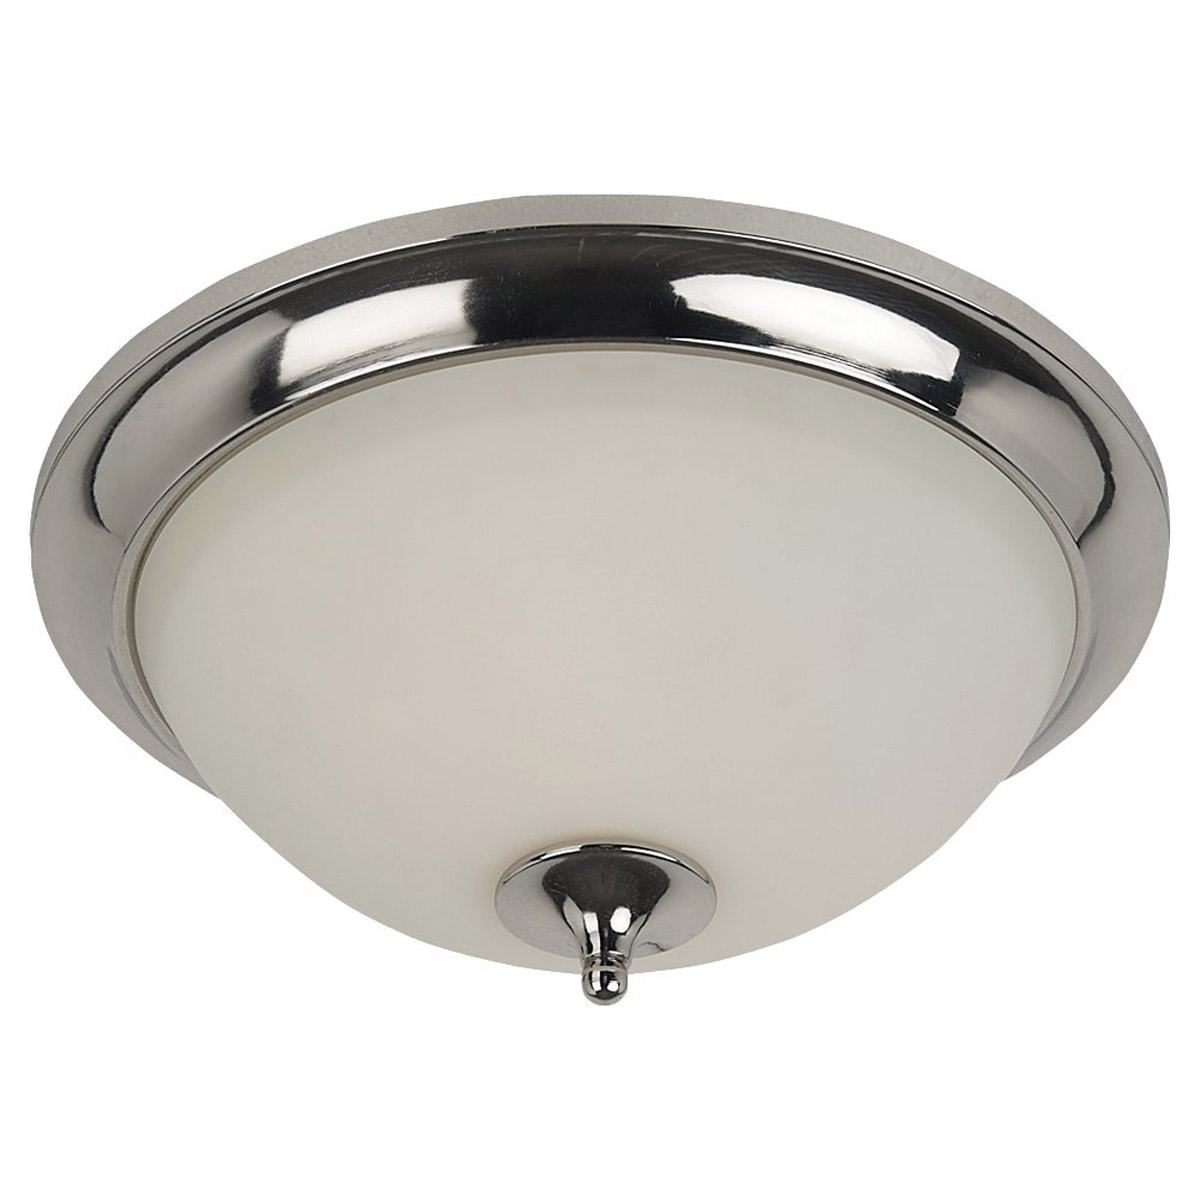 Sea Gull Lighting Solana 2 Light Flush Mount in Polished Nickel 75971-841 photo